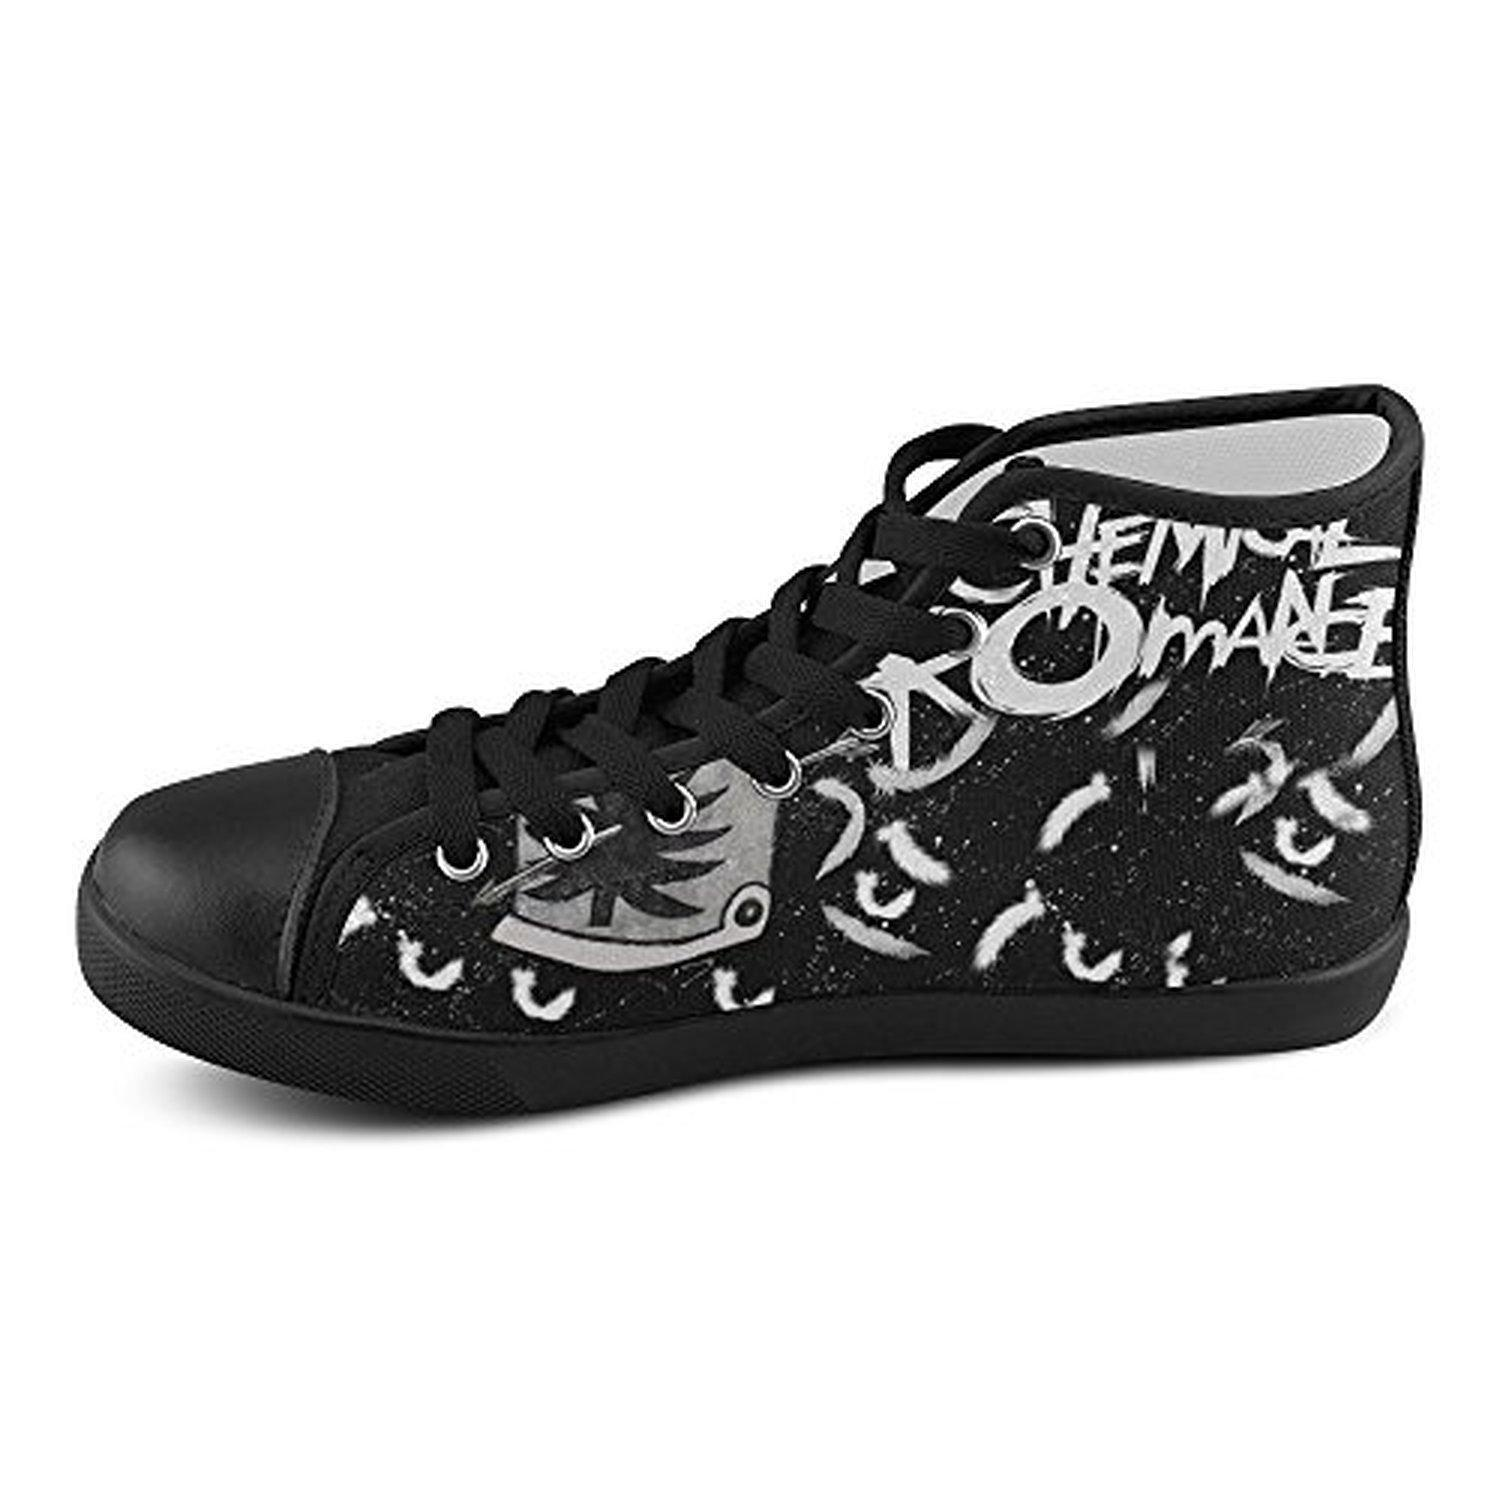 H-ome Art My Chemical Romance Band Women's High-top Lace-Up Canvas Shoes Breathable Flats,Black